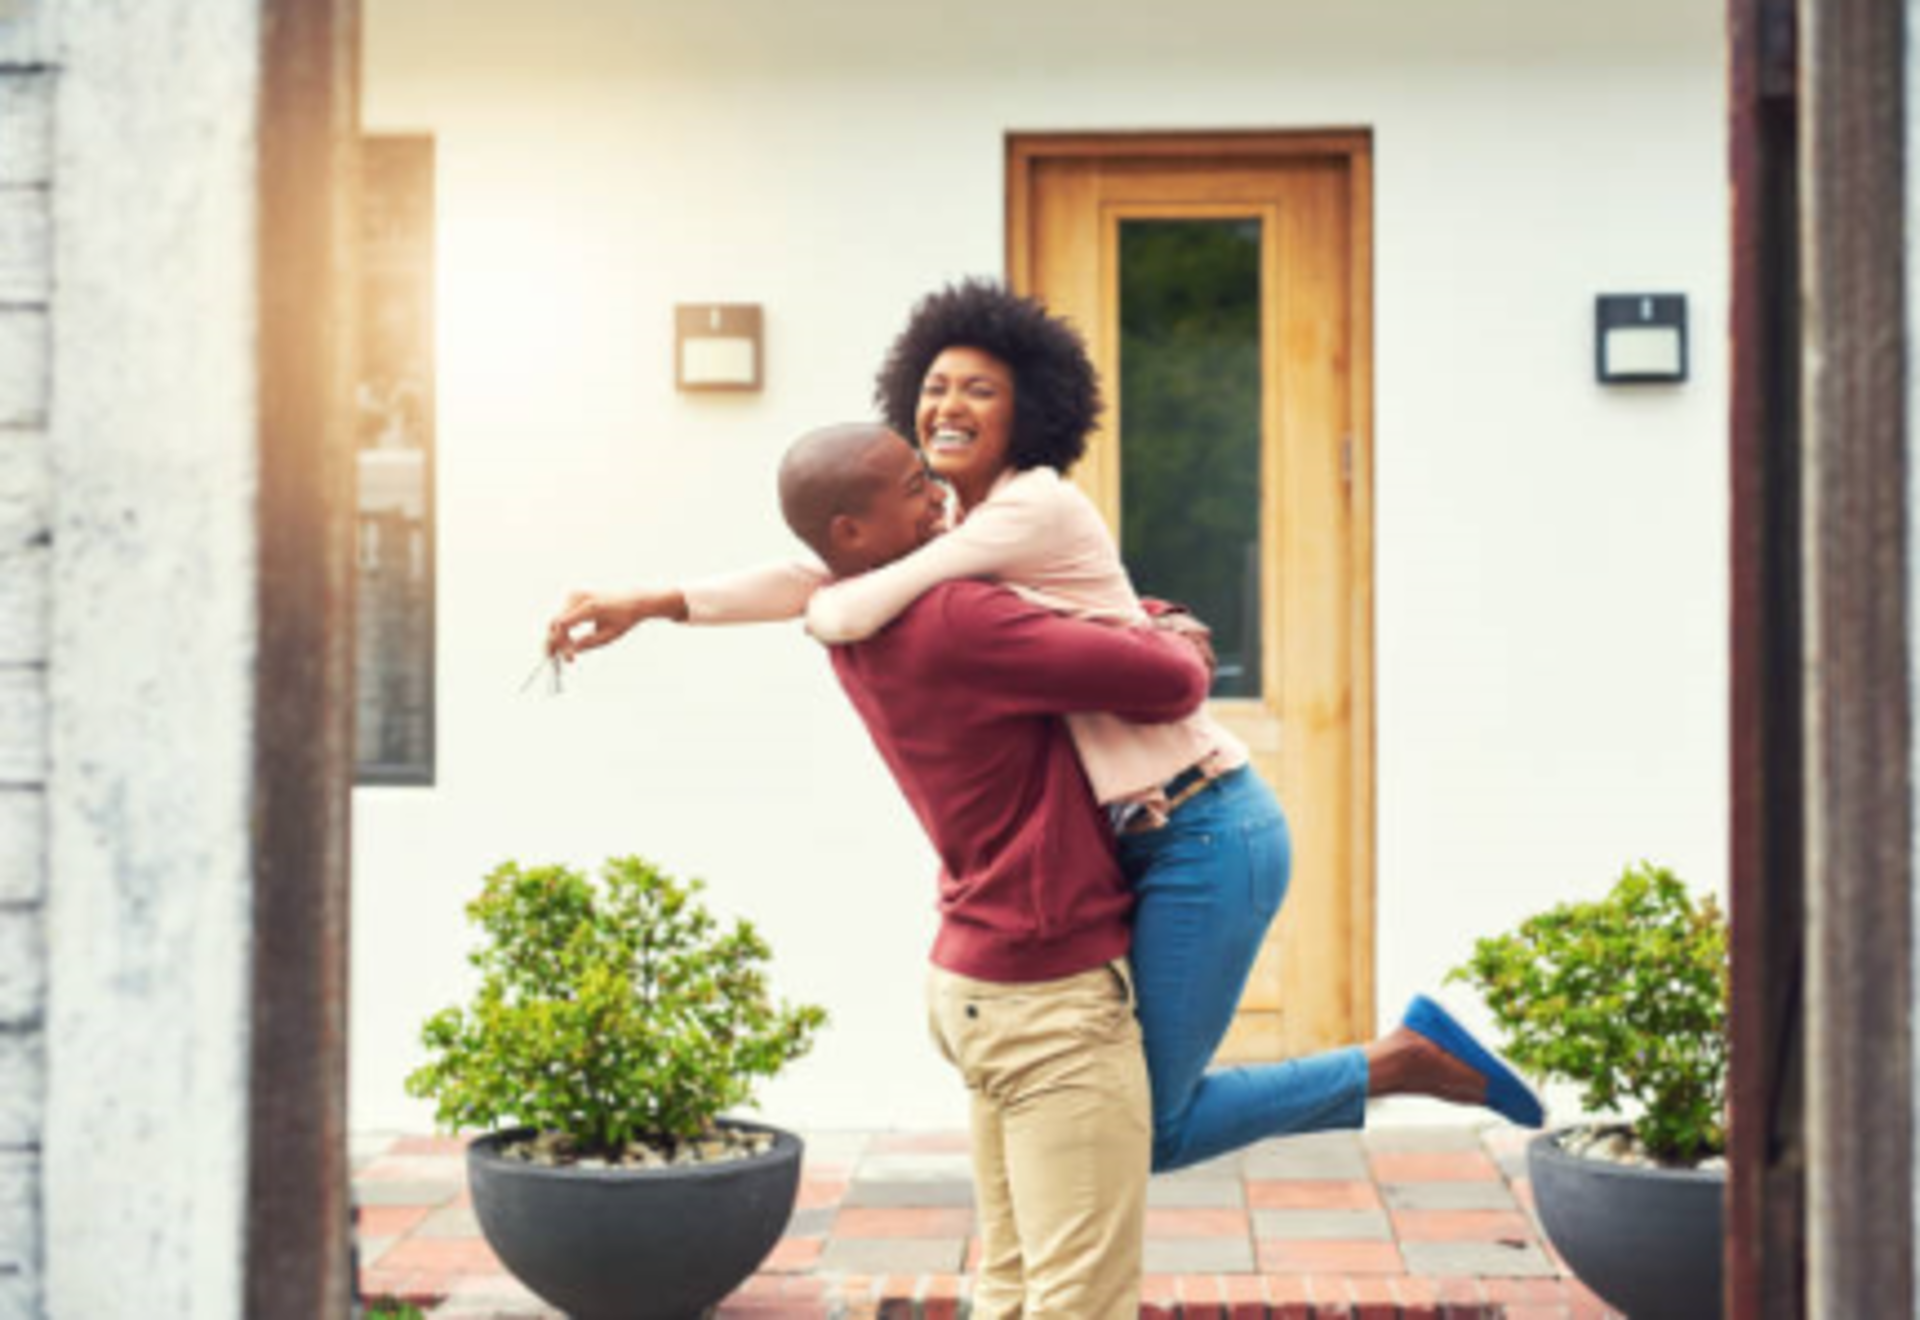 Replace Your Homeownership Fears with Facts